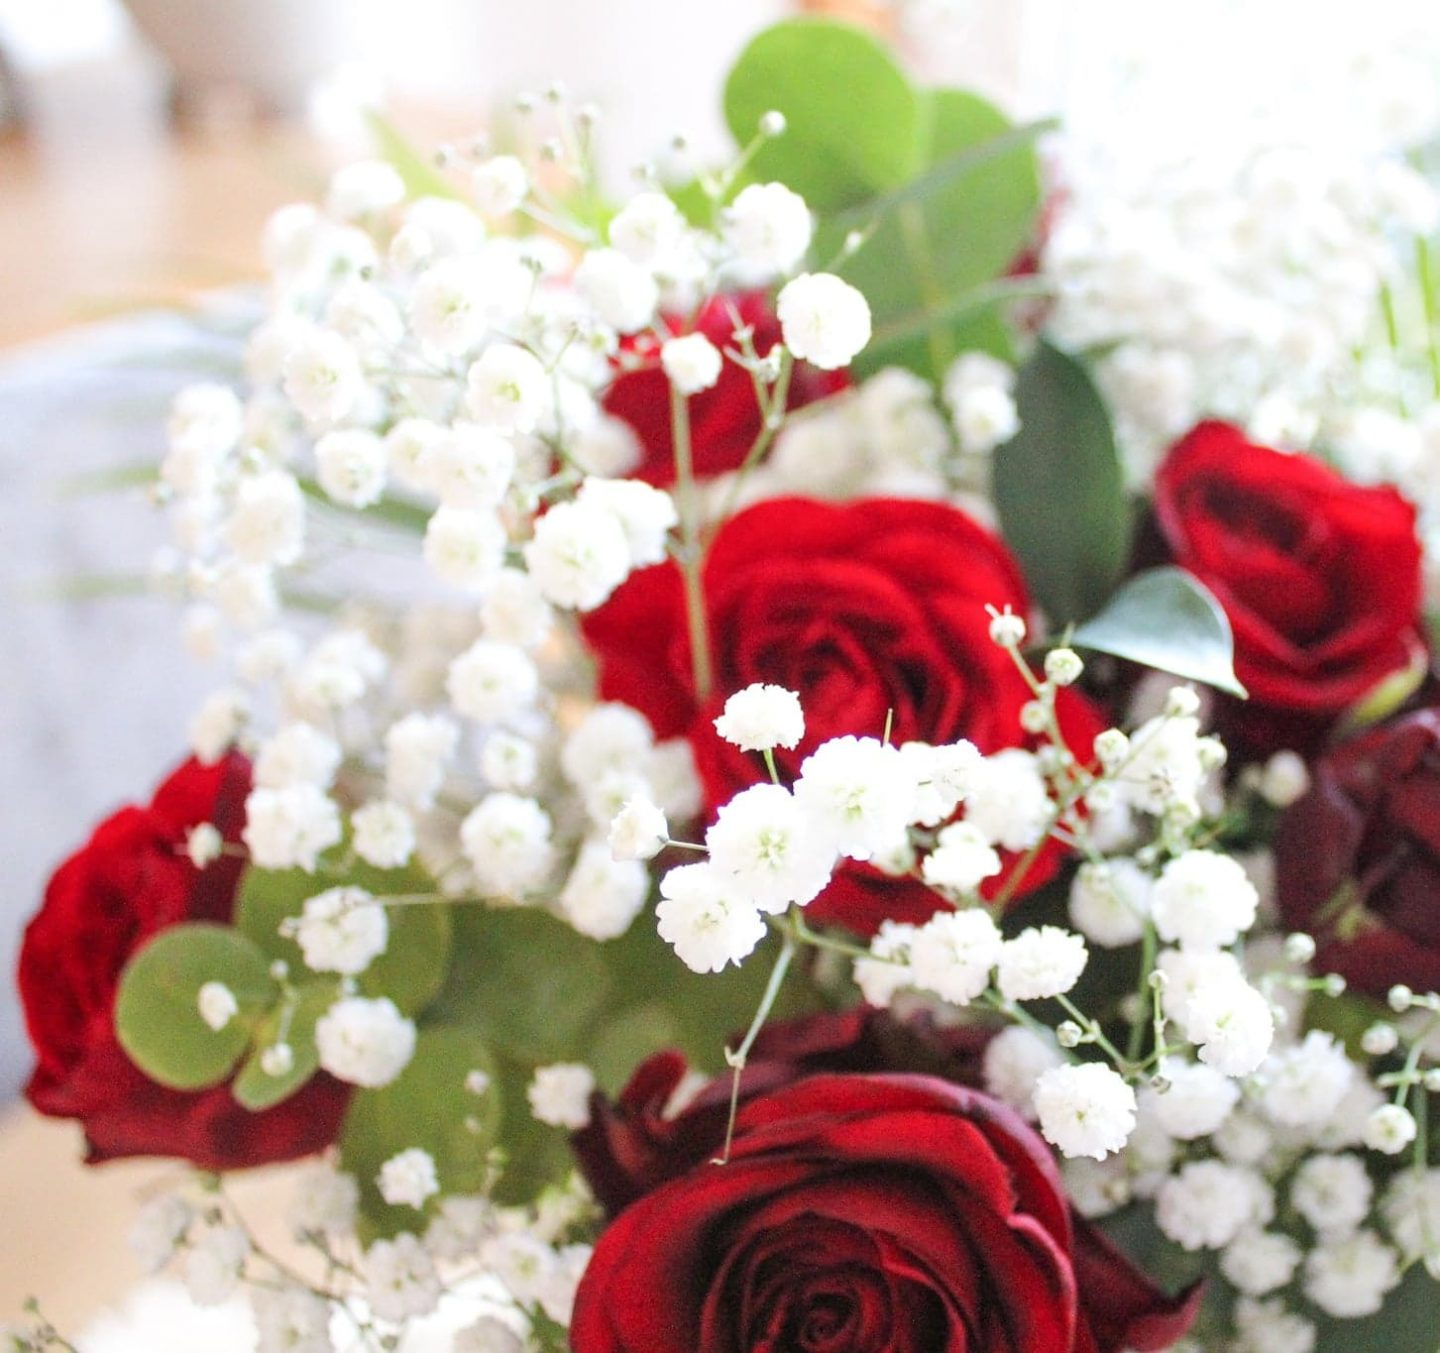 Order a Valentine's Day Bouquet with Prestige Flowers